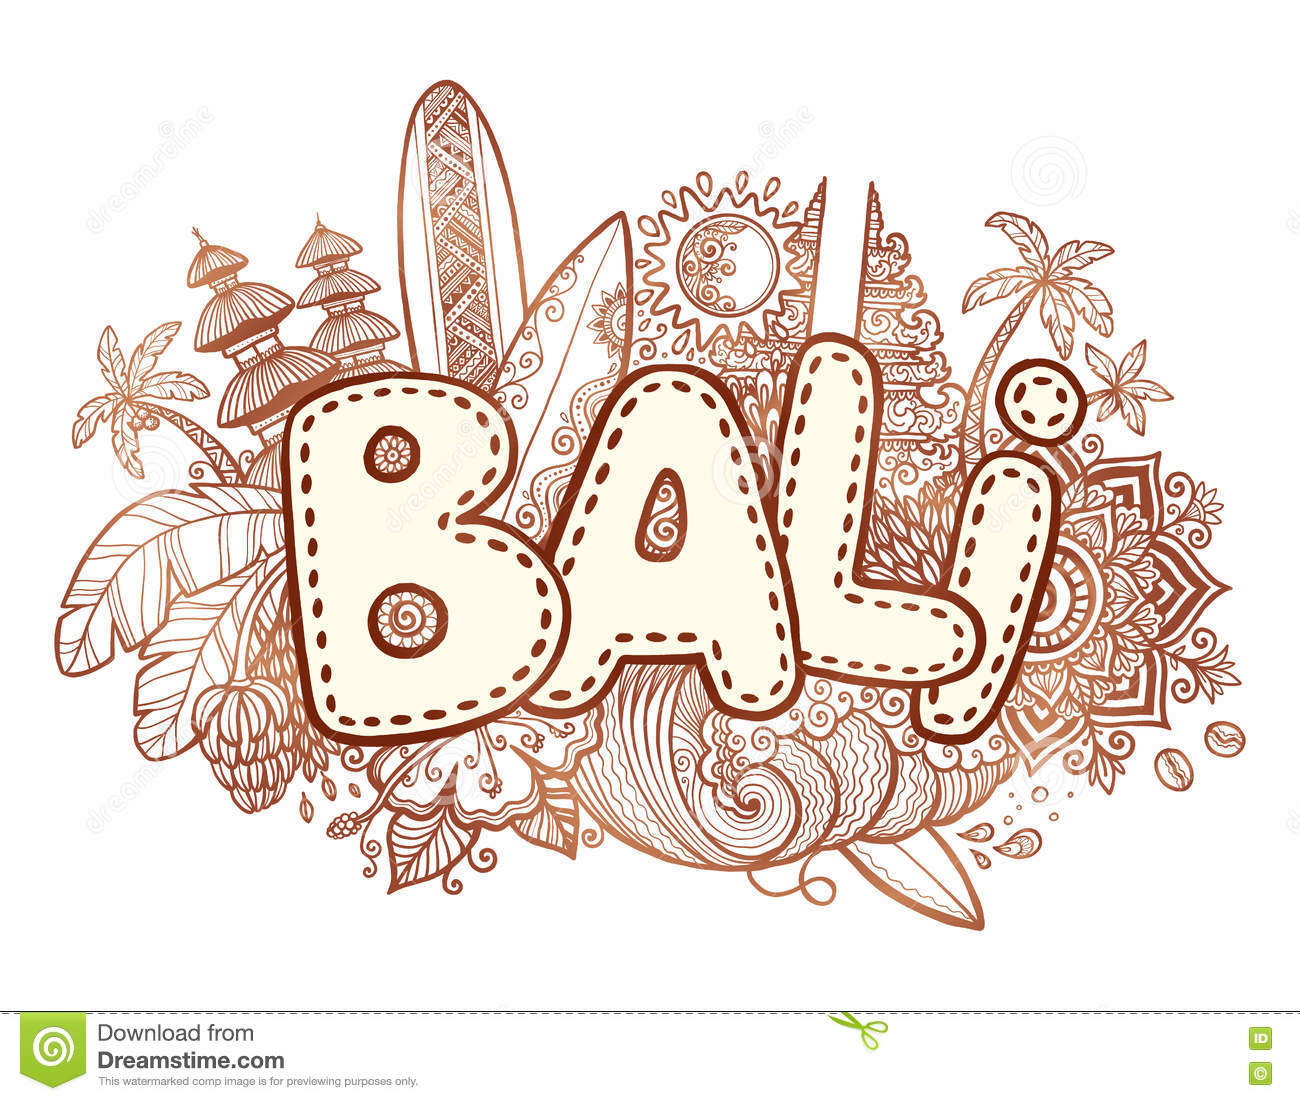 Bali clipart 6 » Clipart Station.